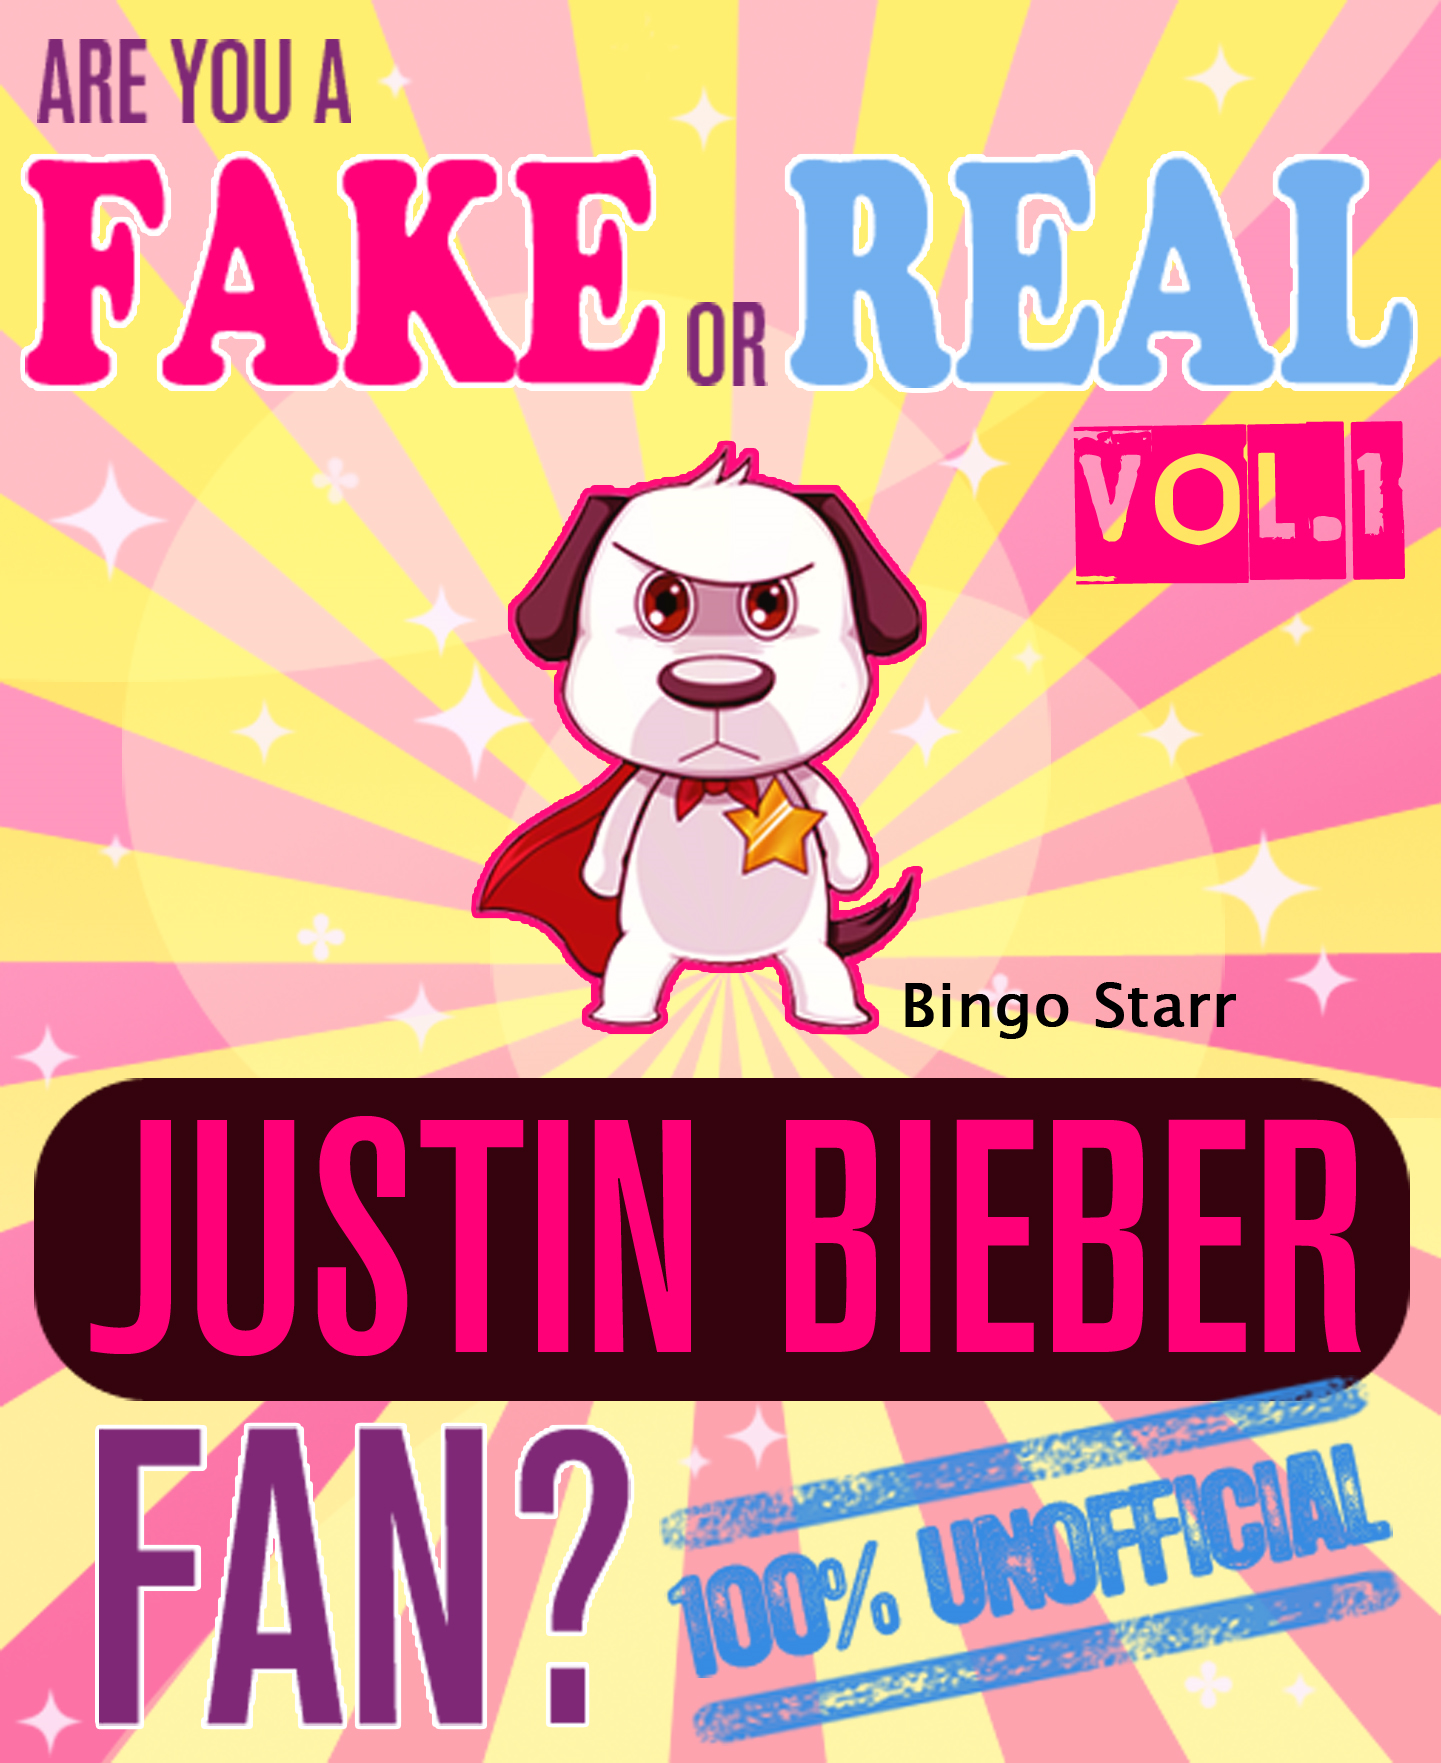 Are You a Fake or Real Justin Bieber Fan? Volume 1 - The 100% Unofficial Quiz and Facts Trivia Travel Set Game By: Bingo Starr